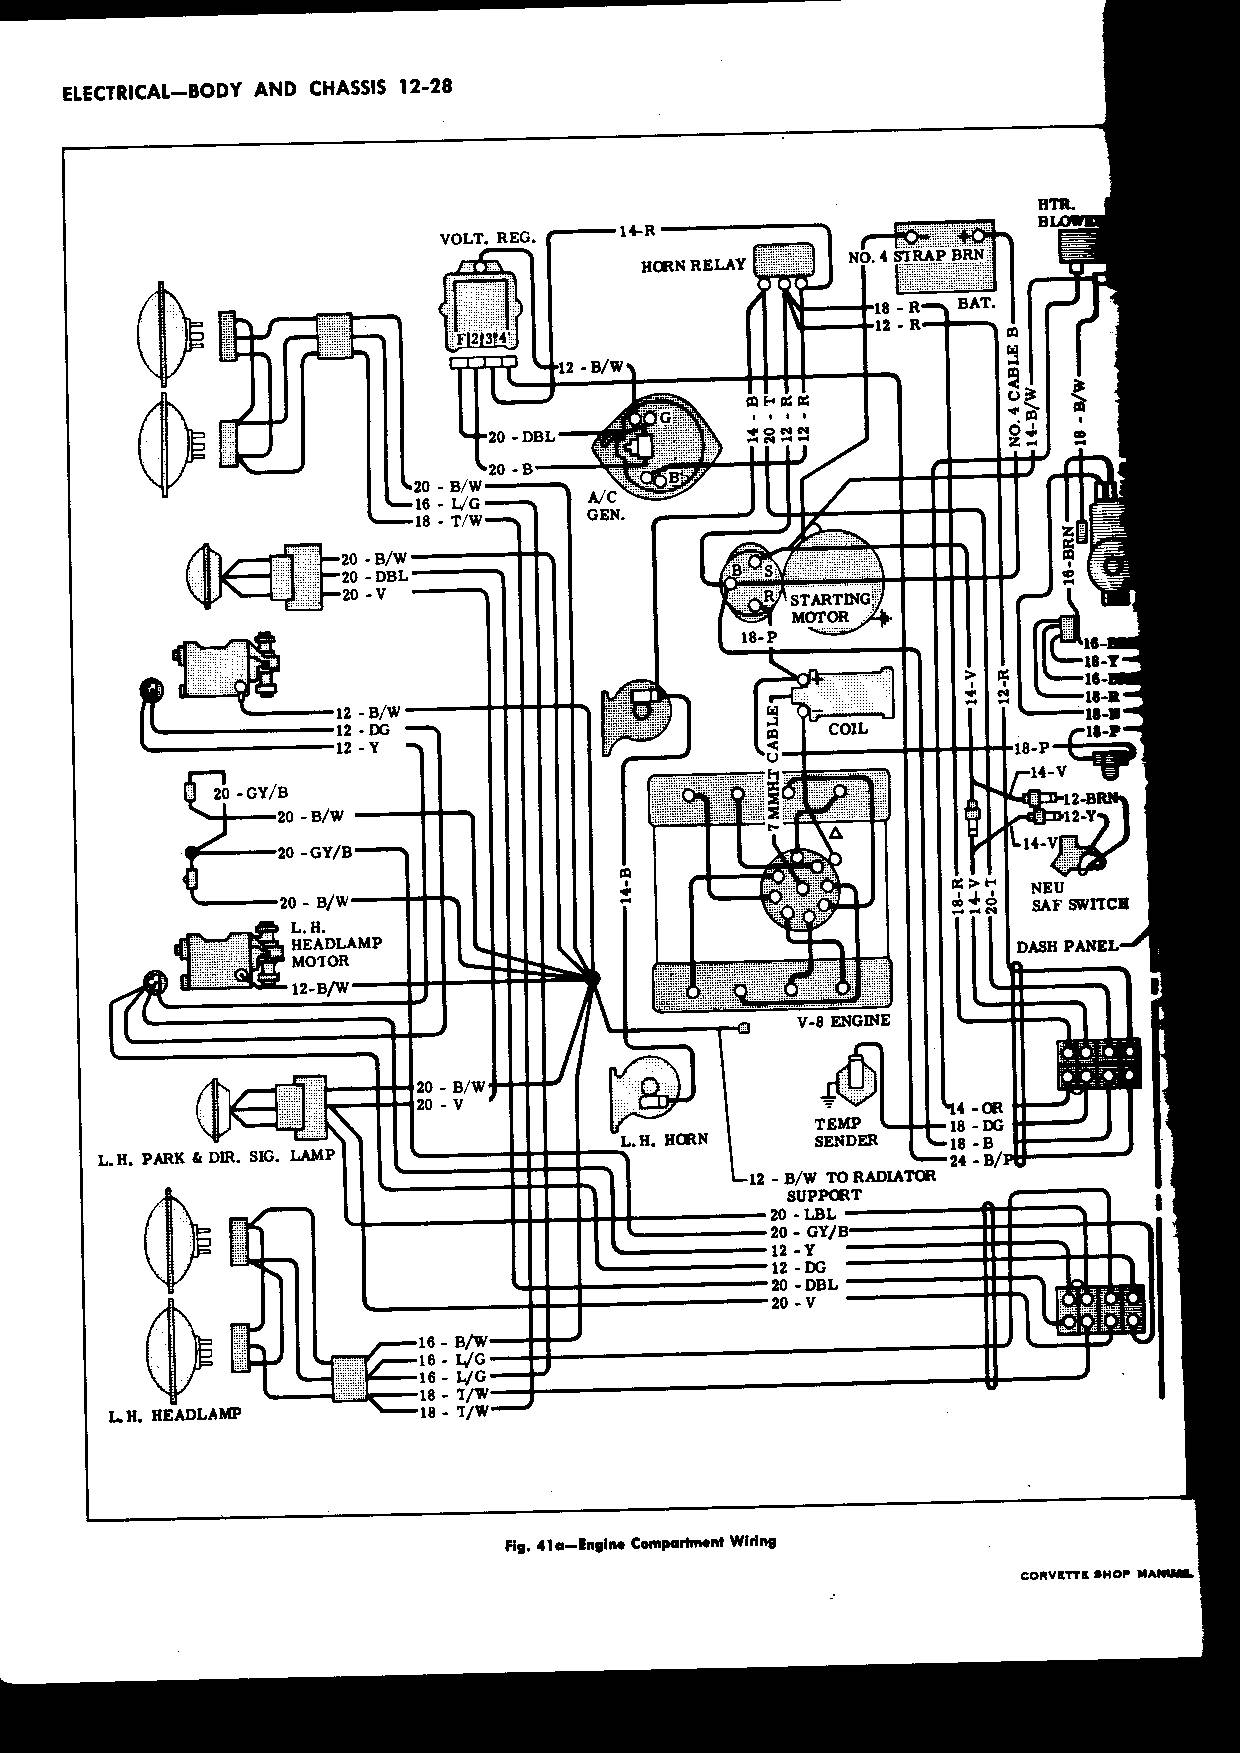 C5 Corvette Wiring Diagrams Corvette Wiring Diagram Images